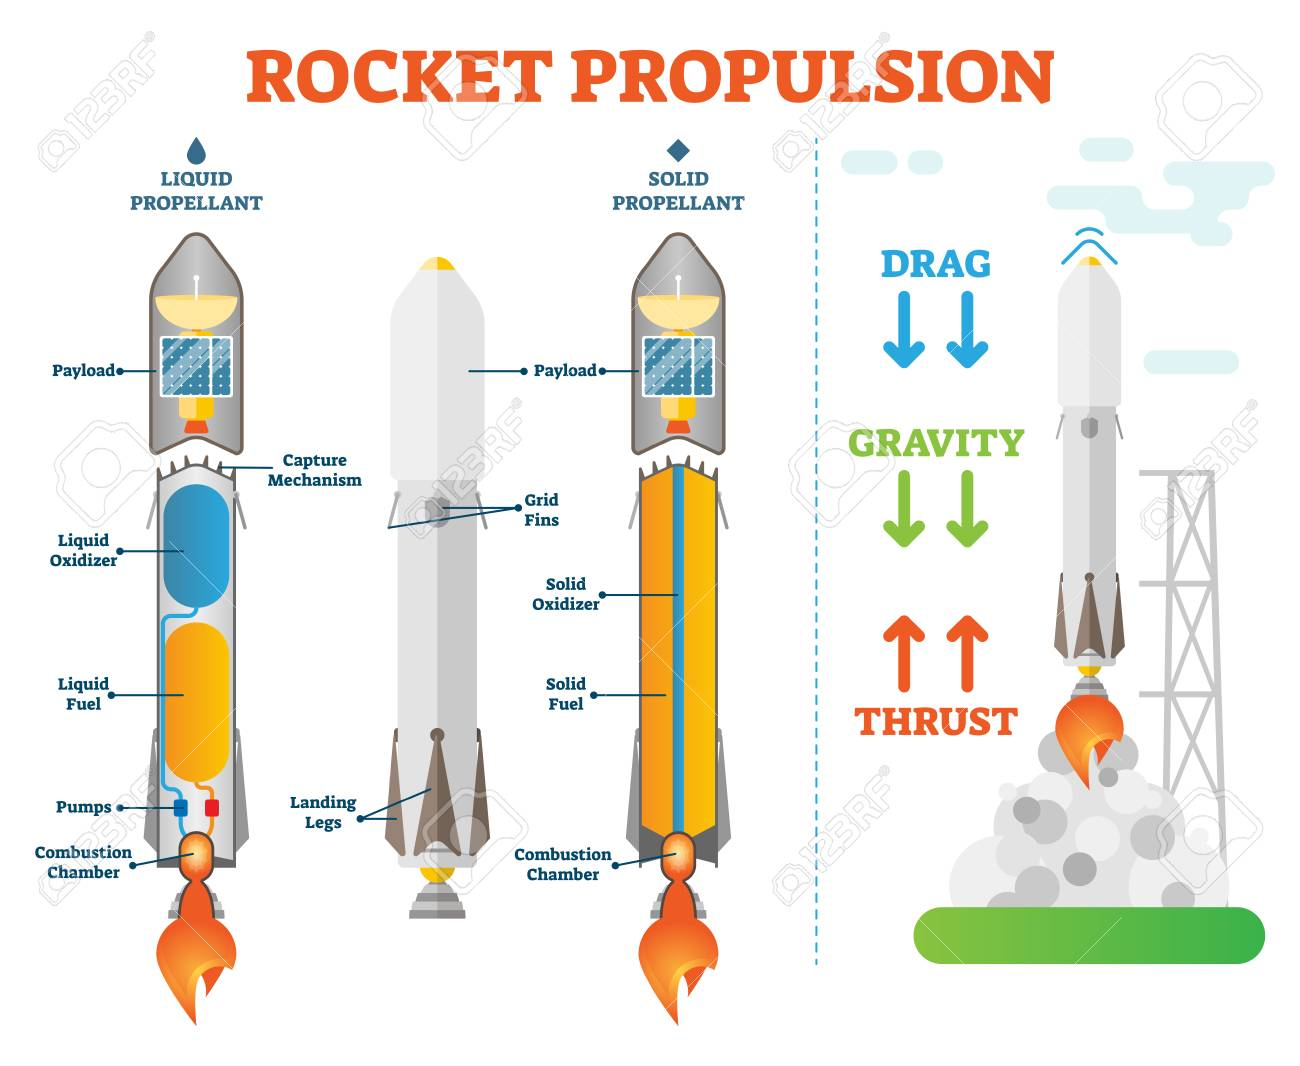 Rocket Propulsion Space Engineering Vector Illustration Technical Shuttle Engine Diagram Scheme Liquid Propellant And Solid